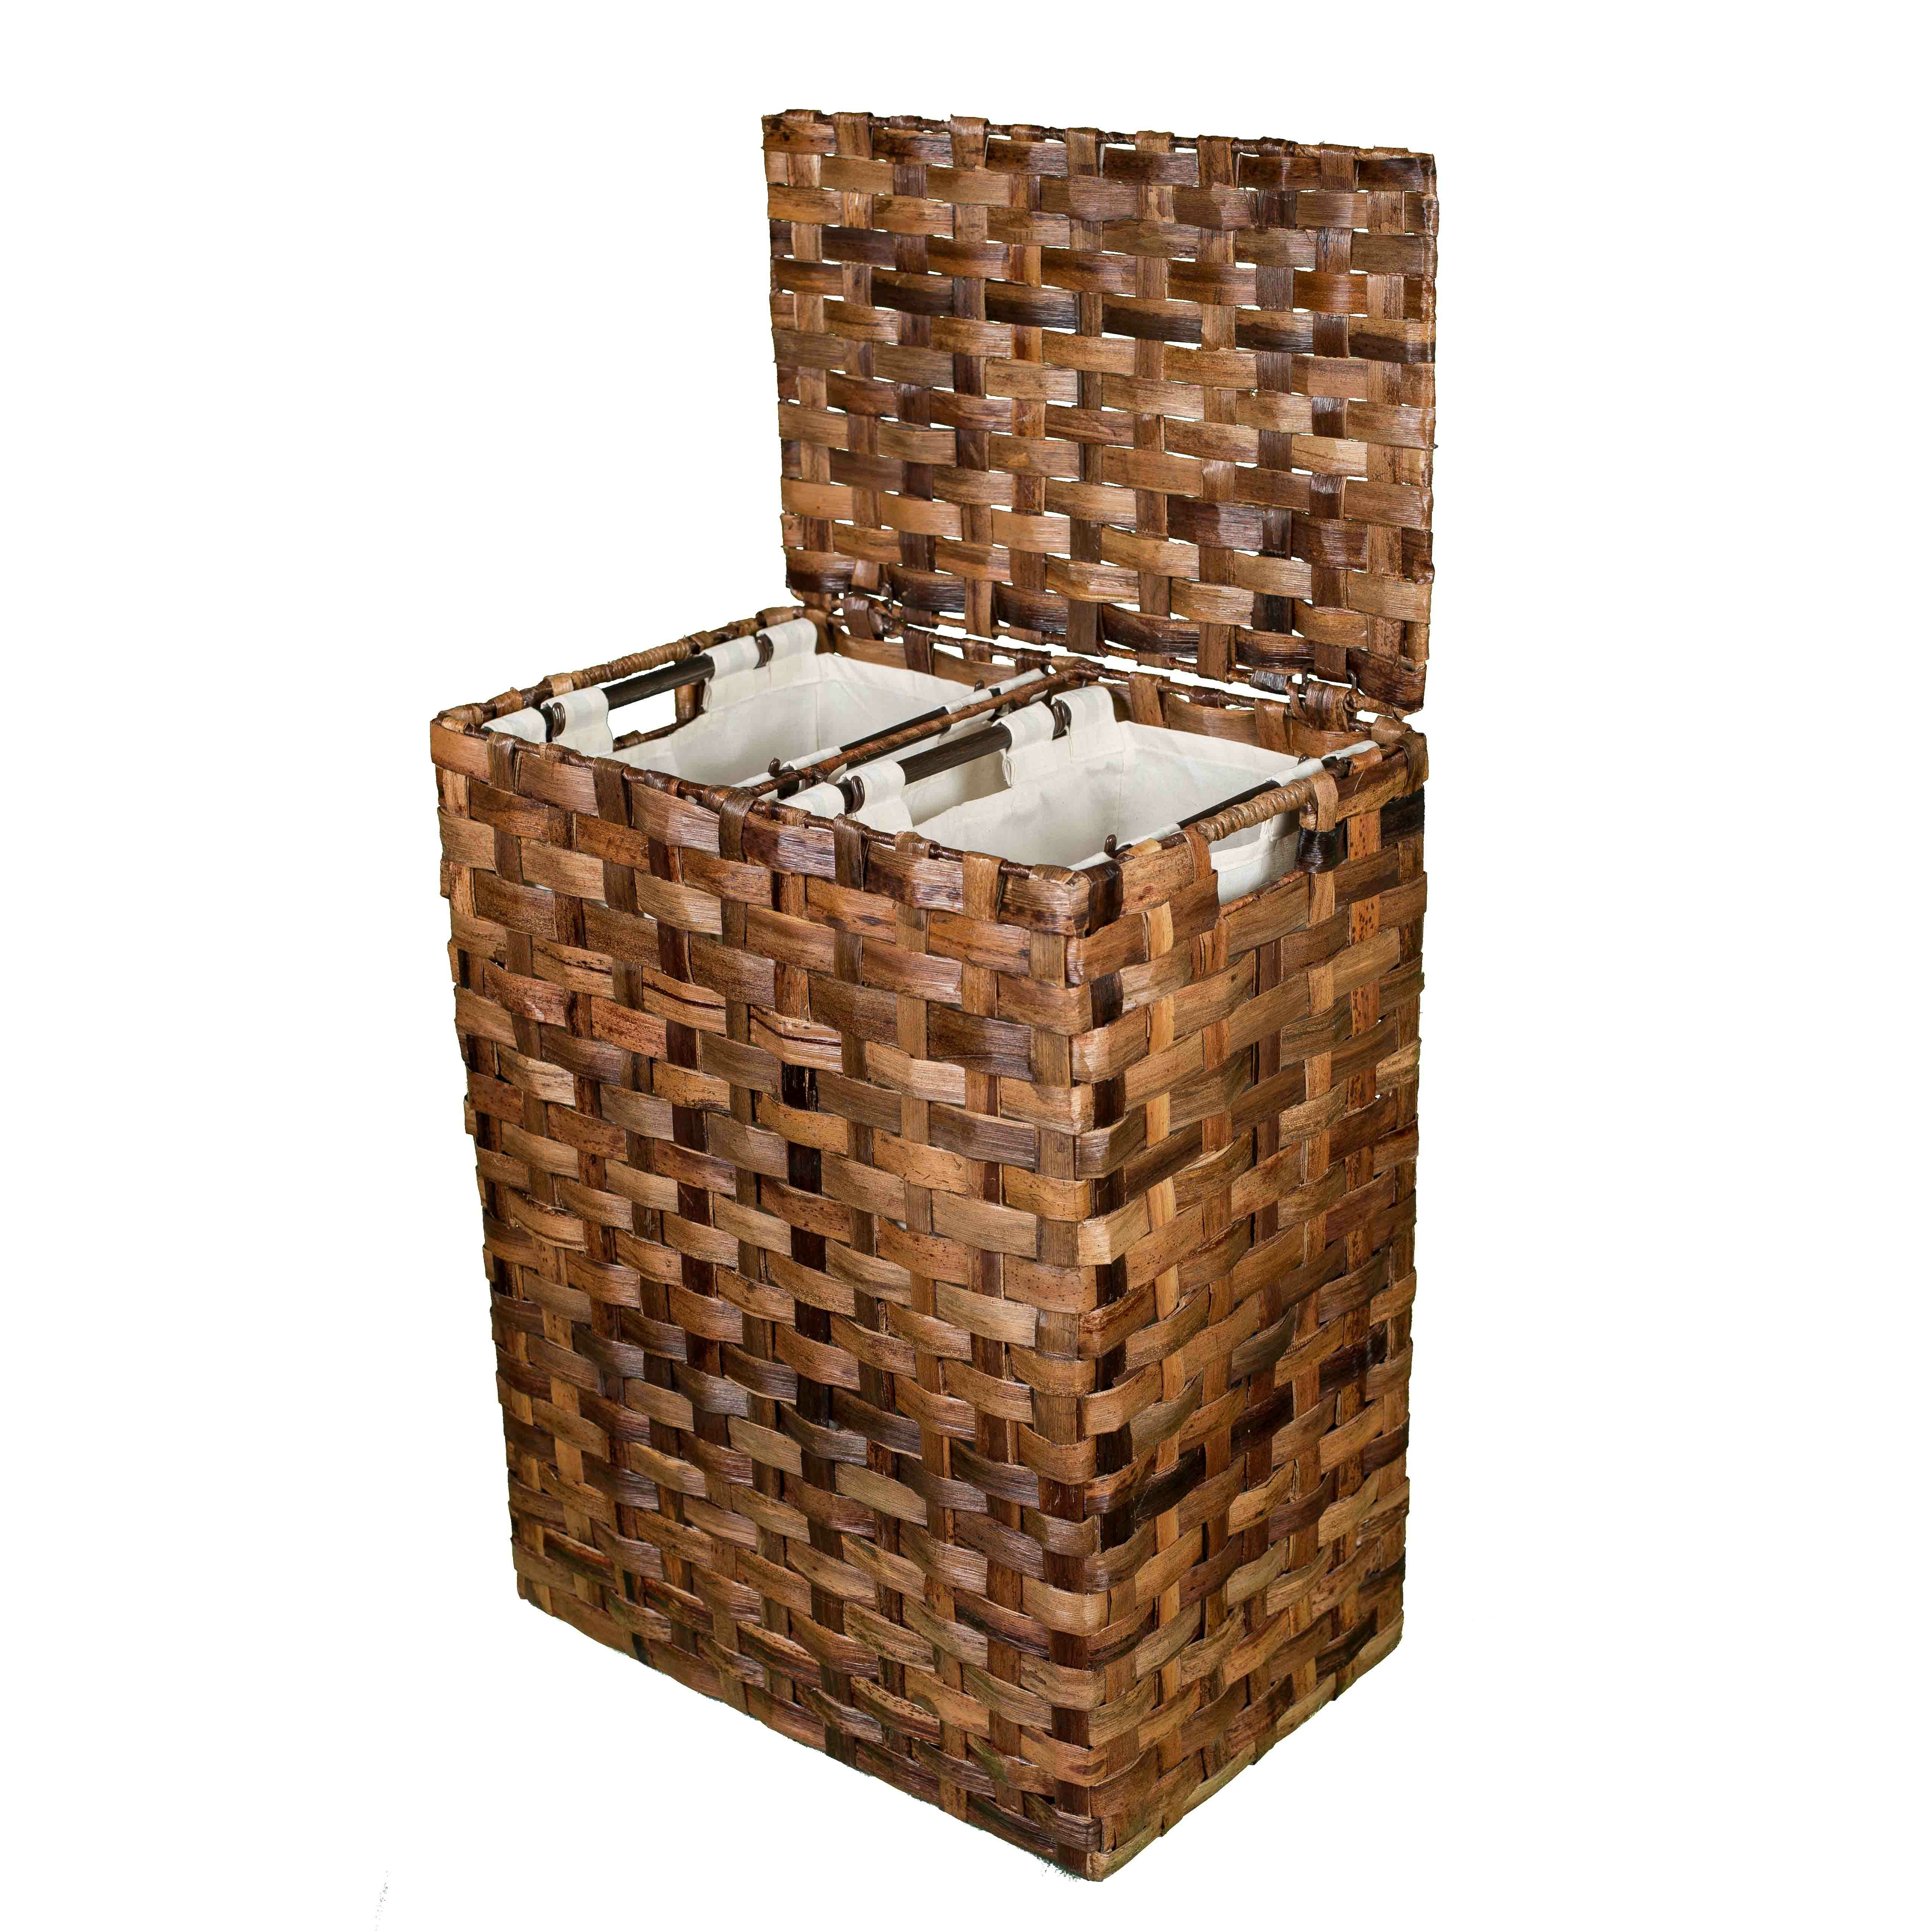 Birdrock home abaca divided flat weave laundry hamper reviews wayfair - Divided clothes hamper ...